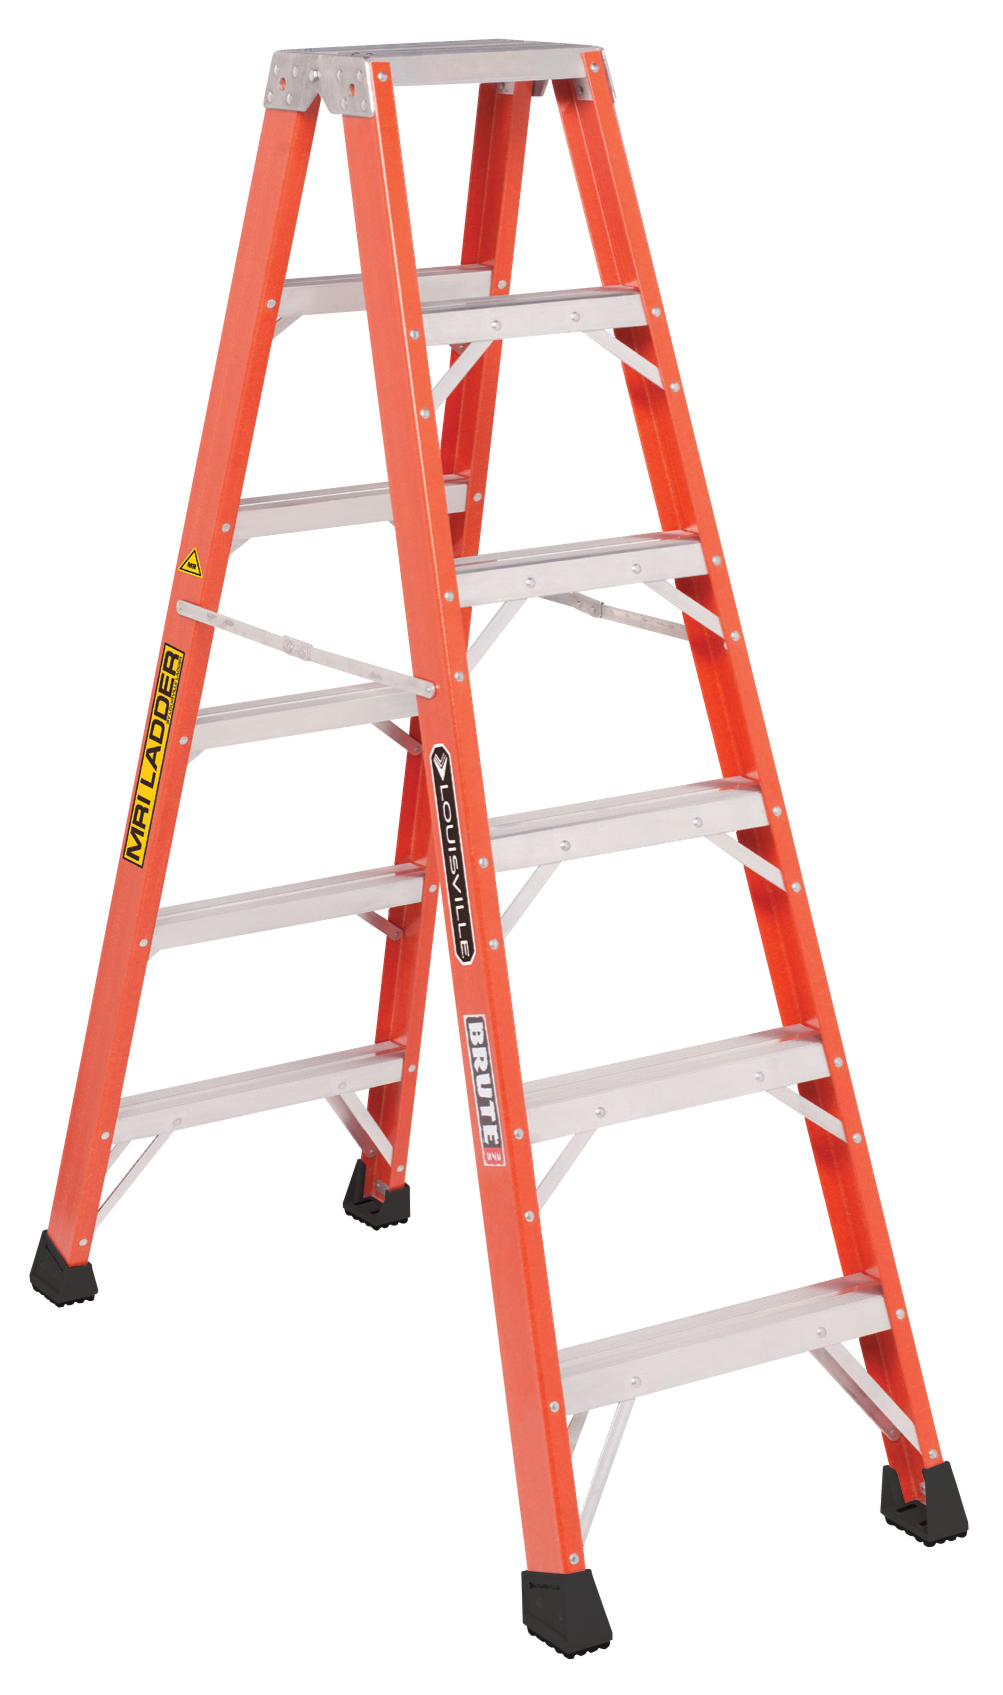 Louisville Ladder's new MRI Ladders are non-magnetic and can be safely used in an MRI environment of 3-Tesla or less.